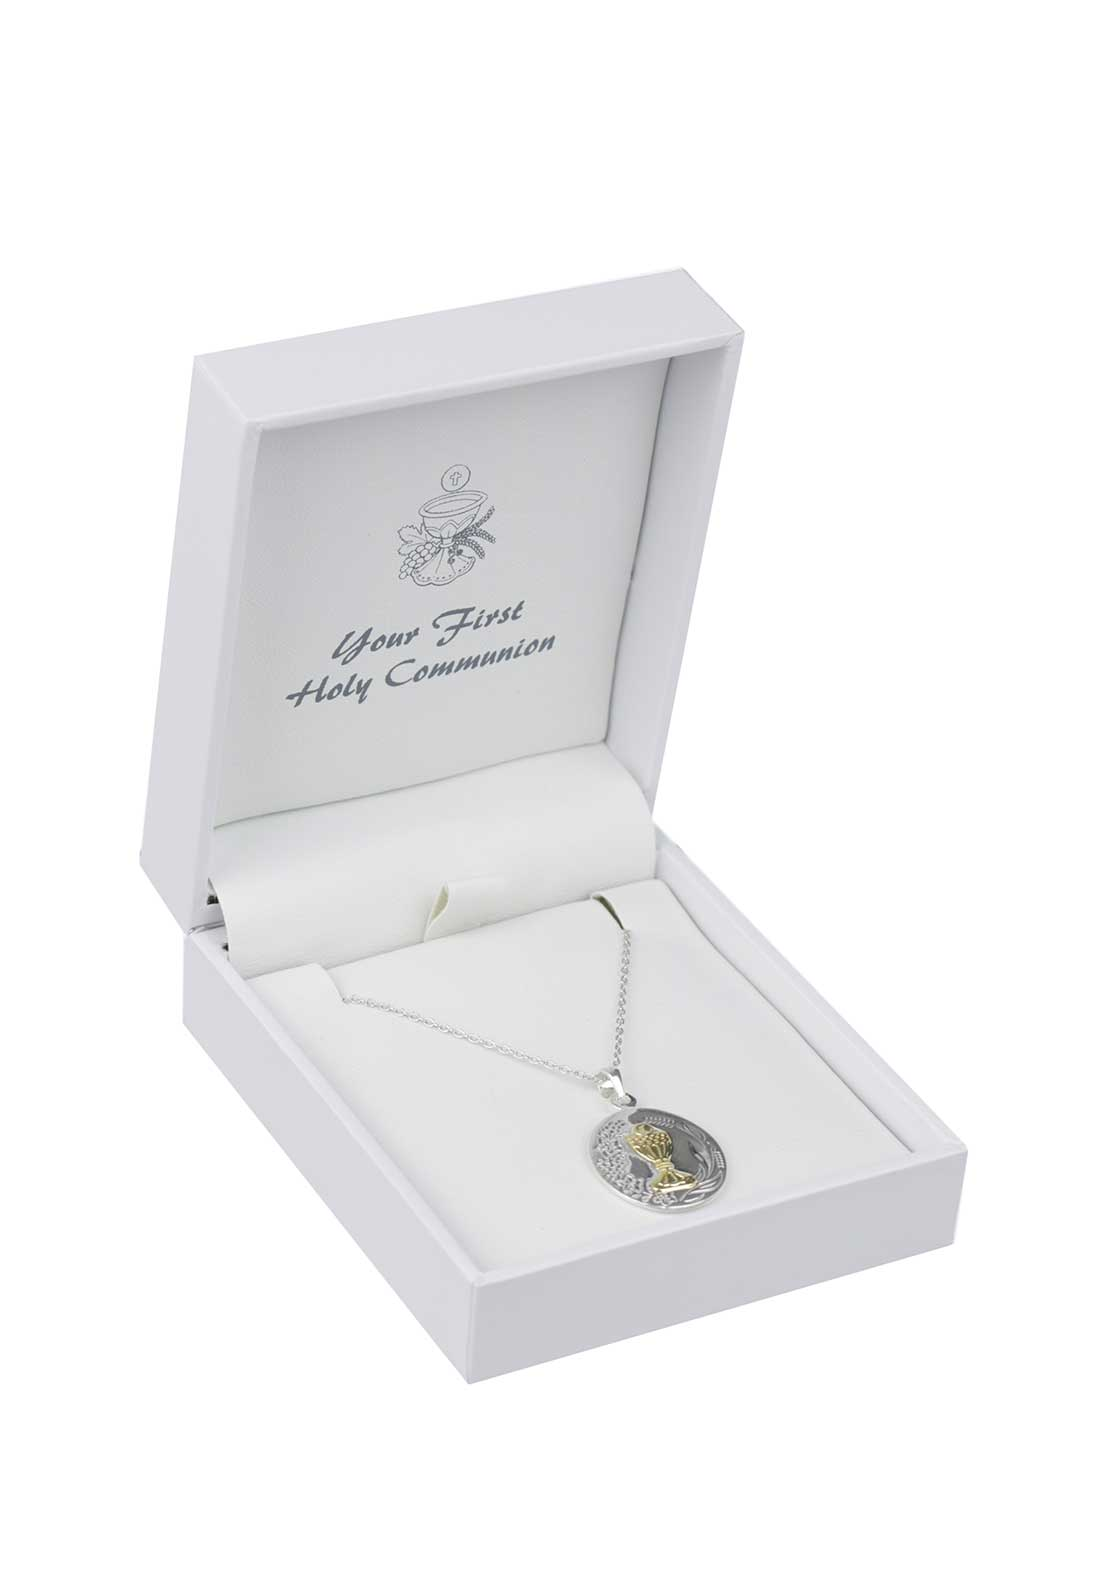 D'Alton First Holy Communion Pendant Necklace, Silver